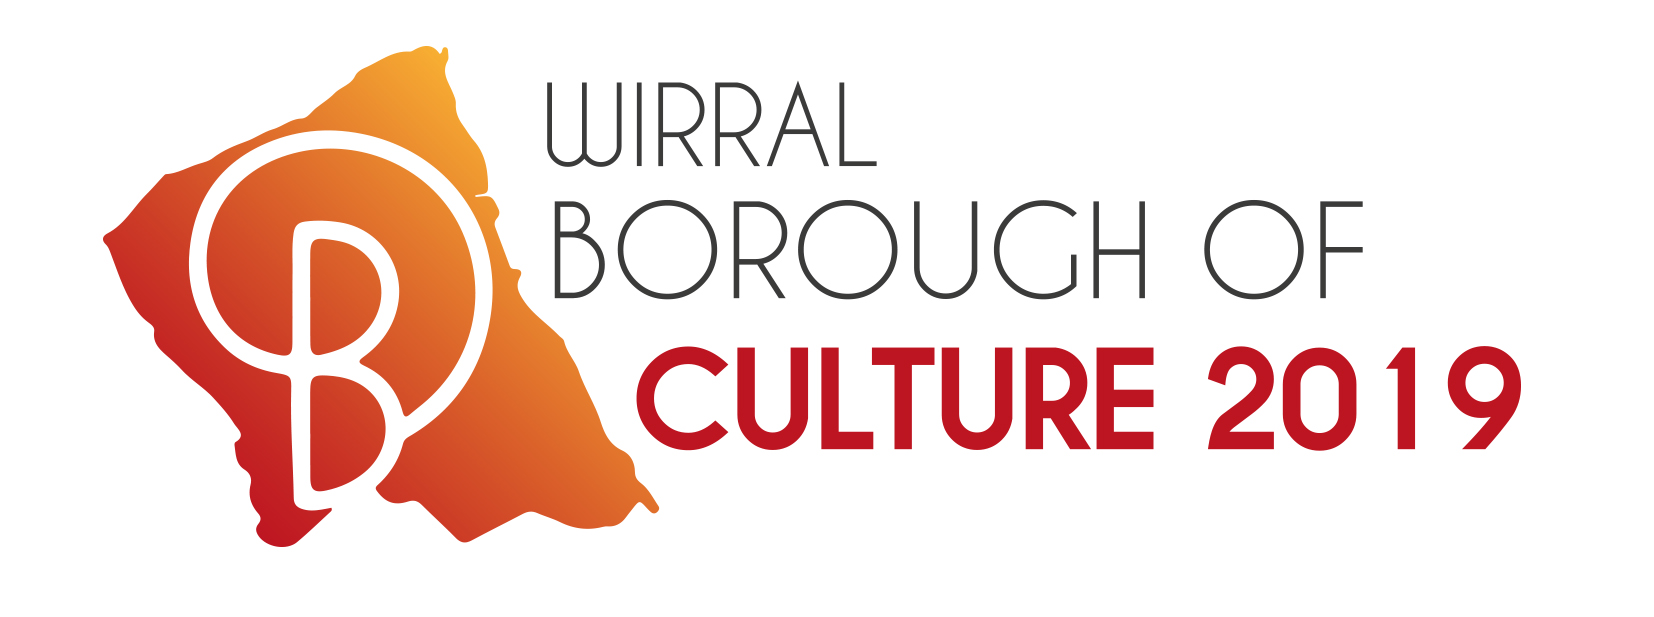 Wirral Borough of Culture 2019